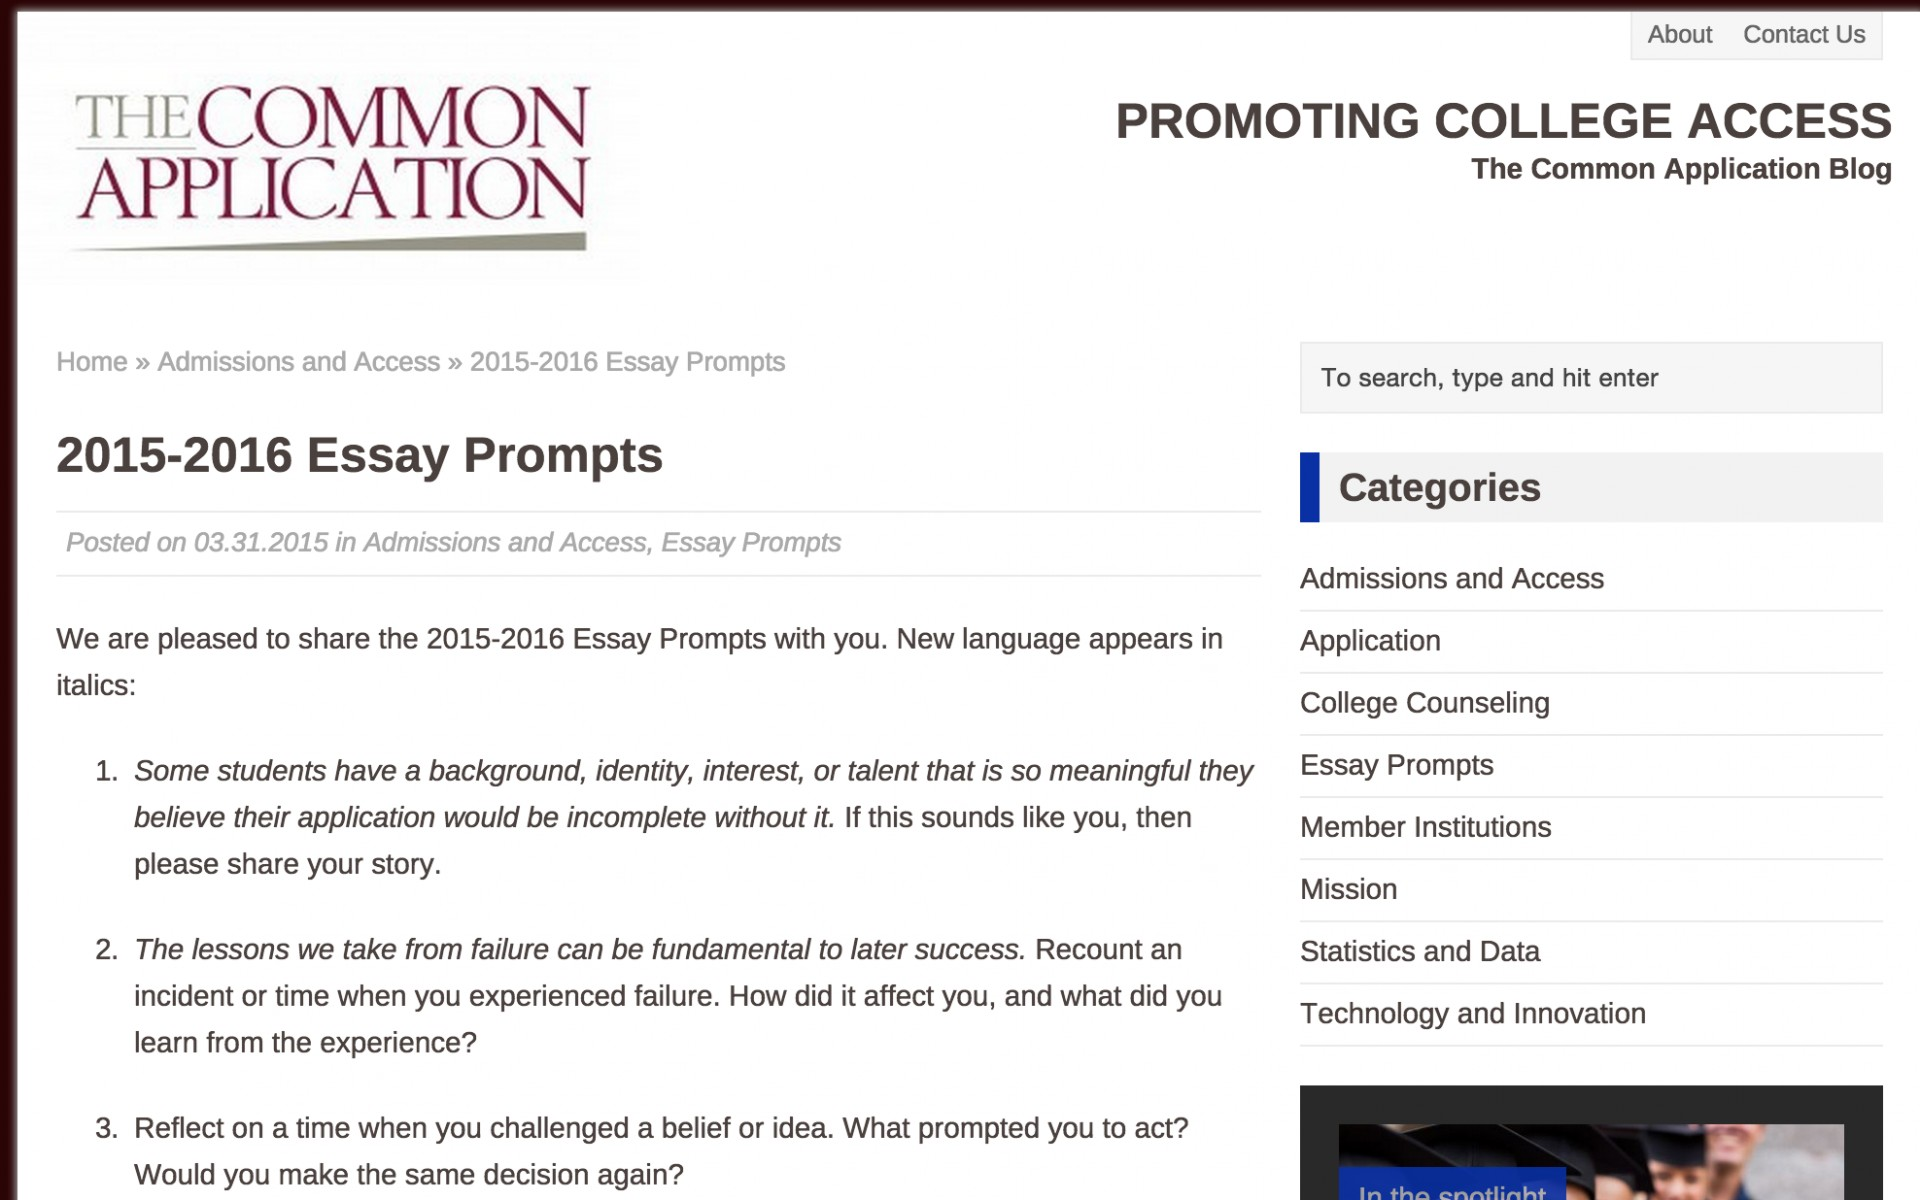 006 Screen Shot At Pm Essay Example Tufts Supplemental Top Essays Samples That Worked 1920